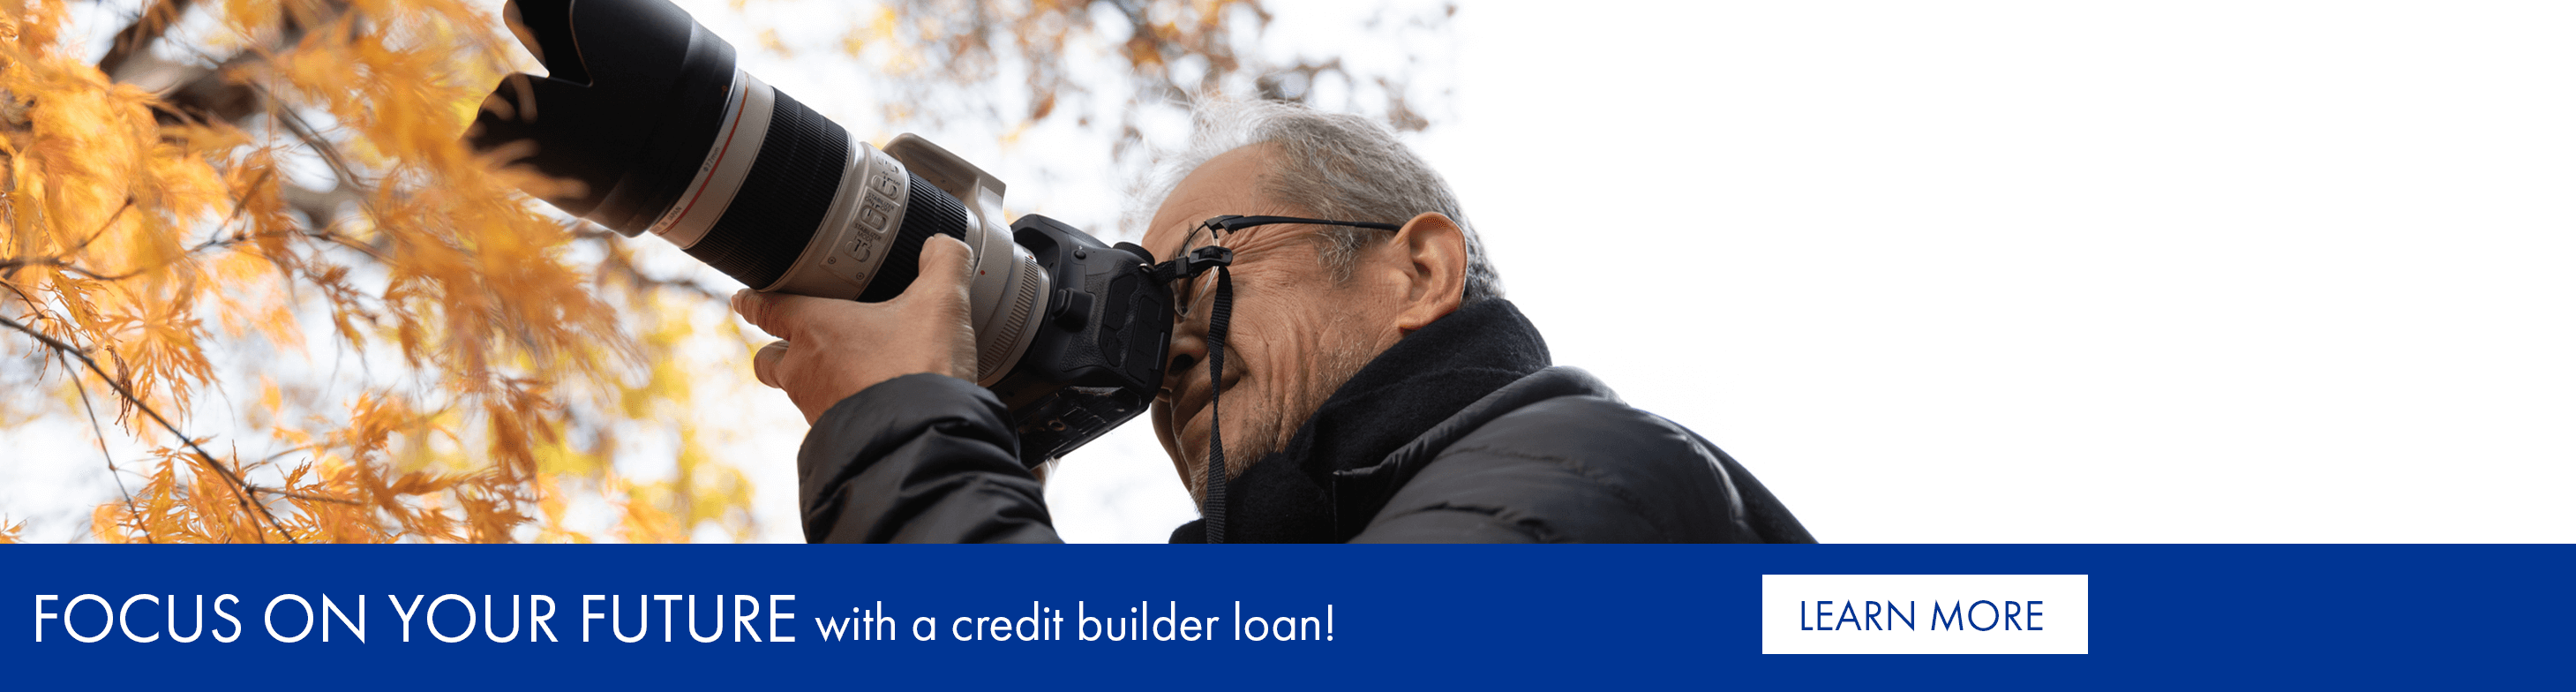 Focus on your future with a credit builder loan!